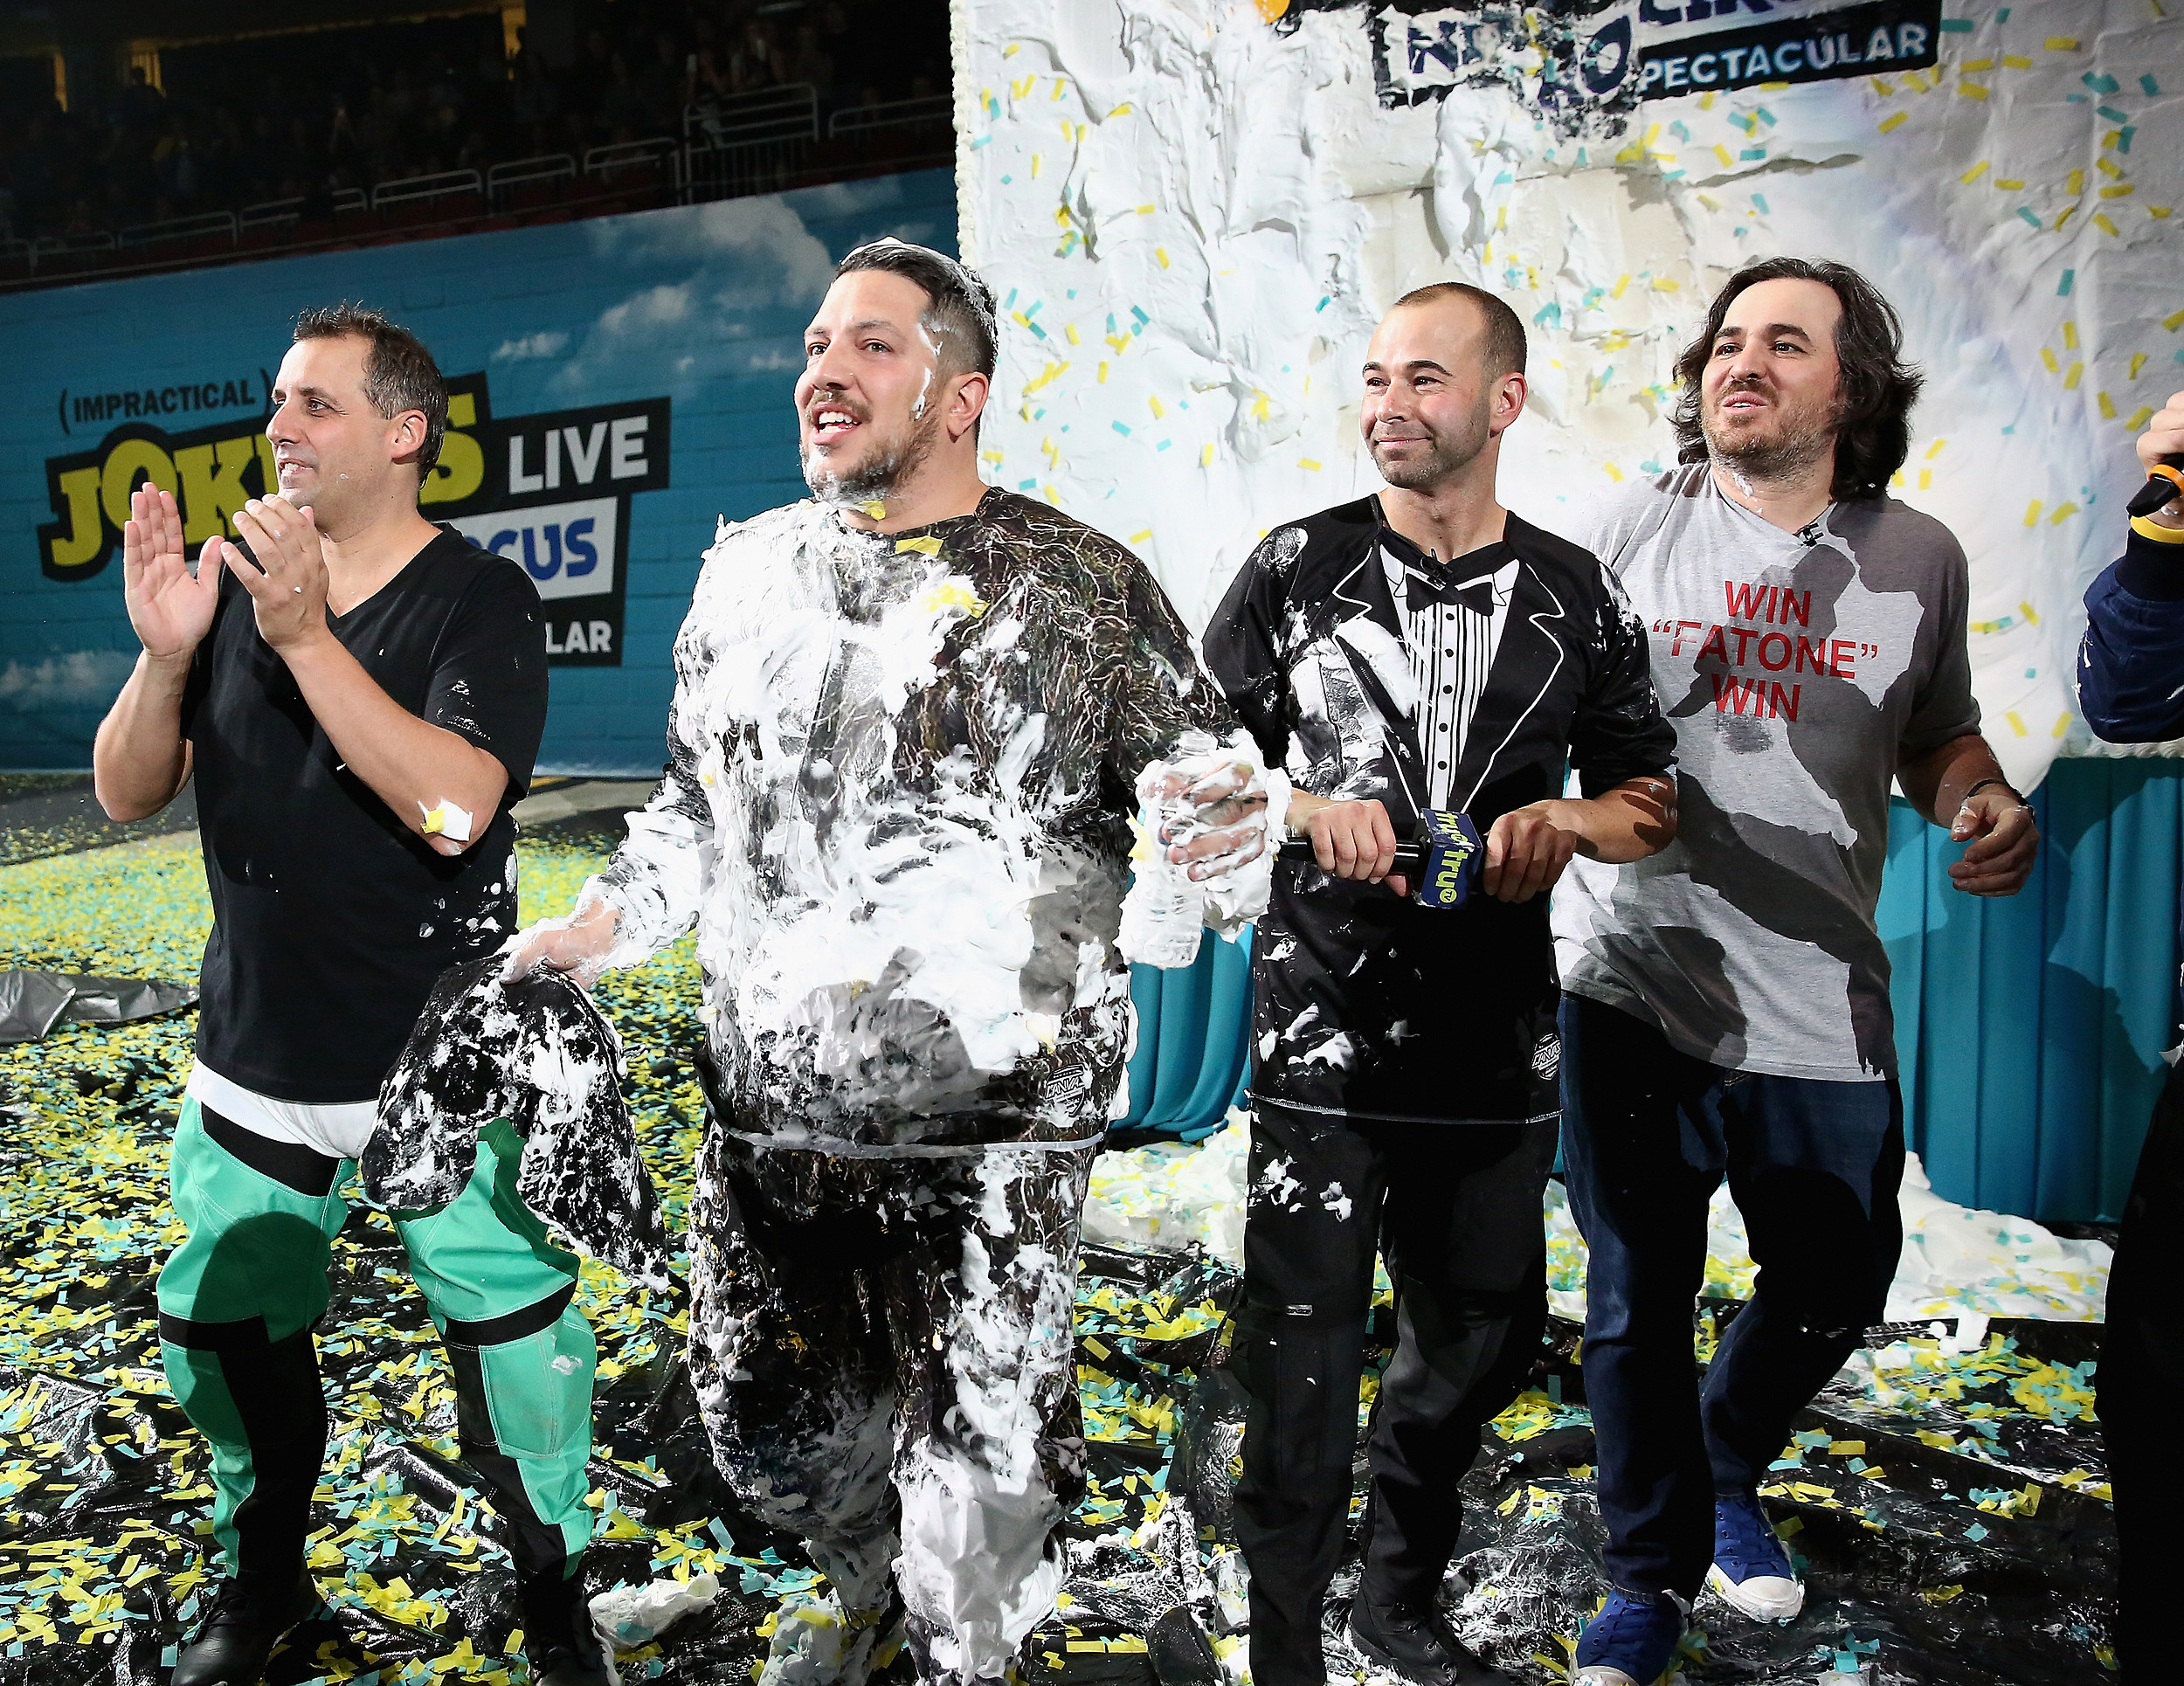 The impractical jokers are coming to the minnesota state fair m4hsunfo